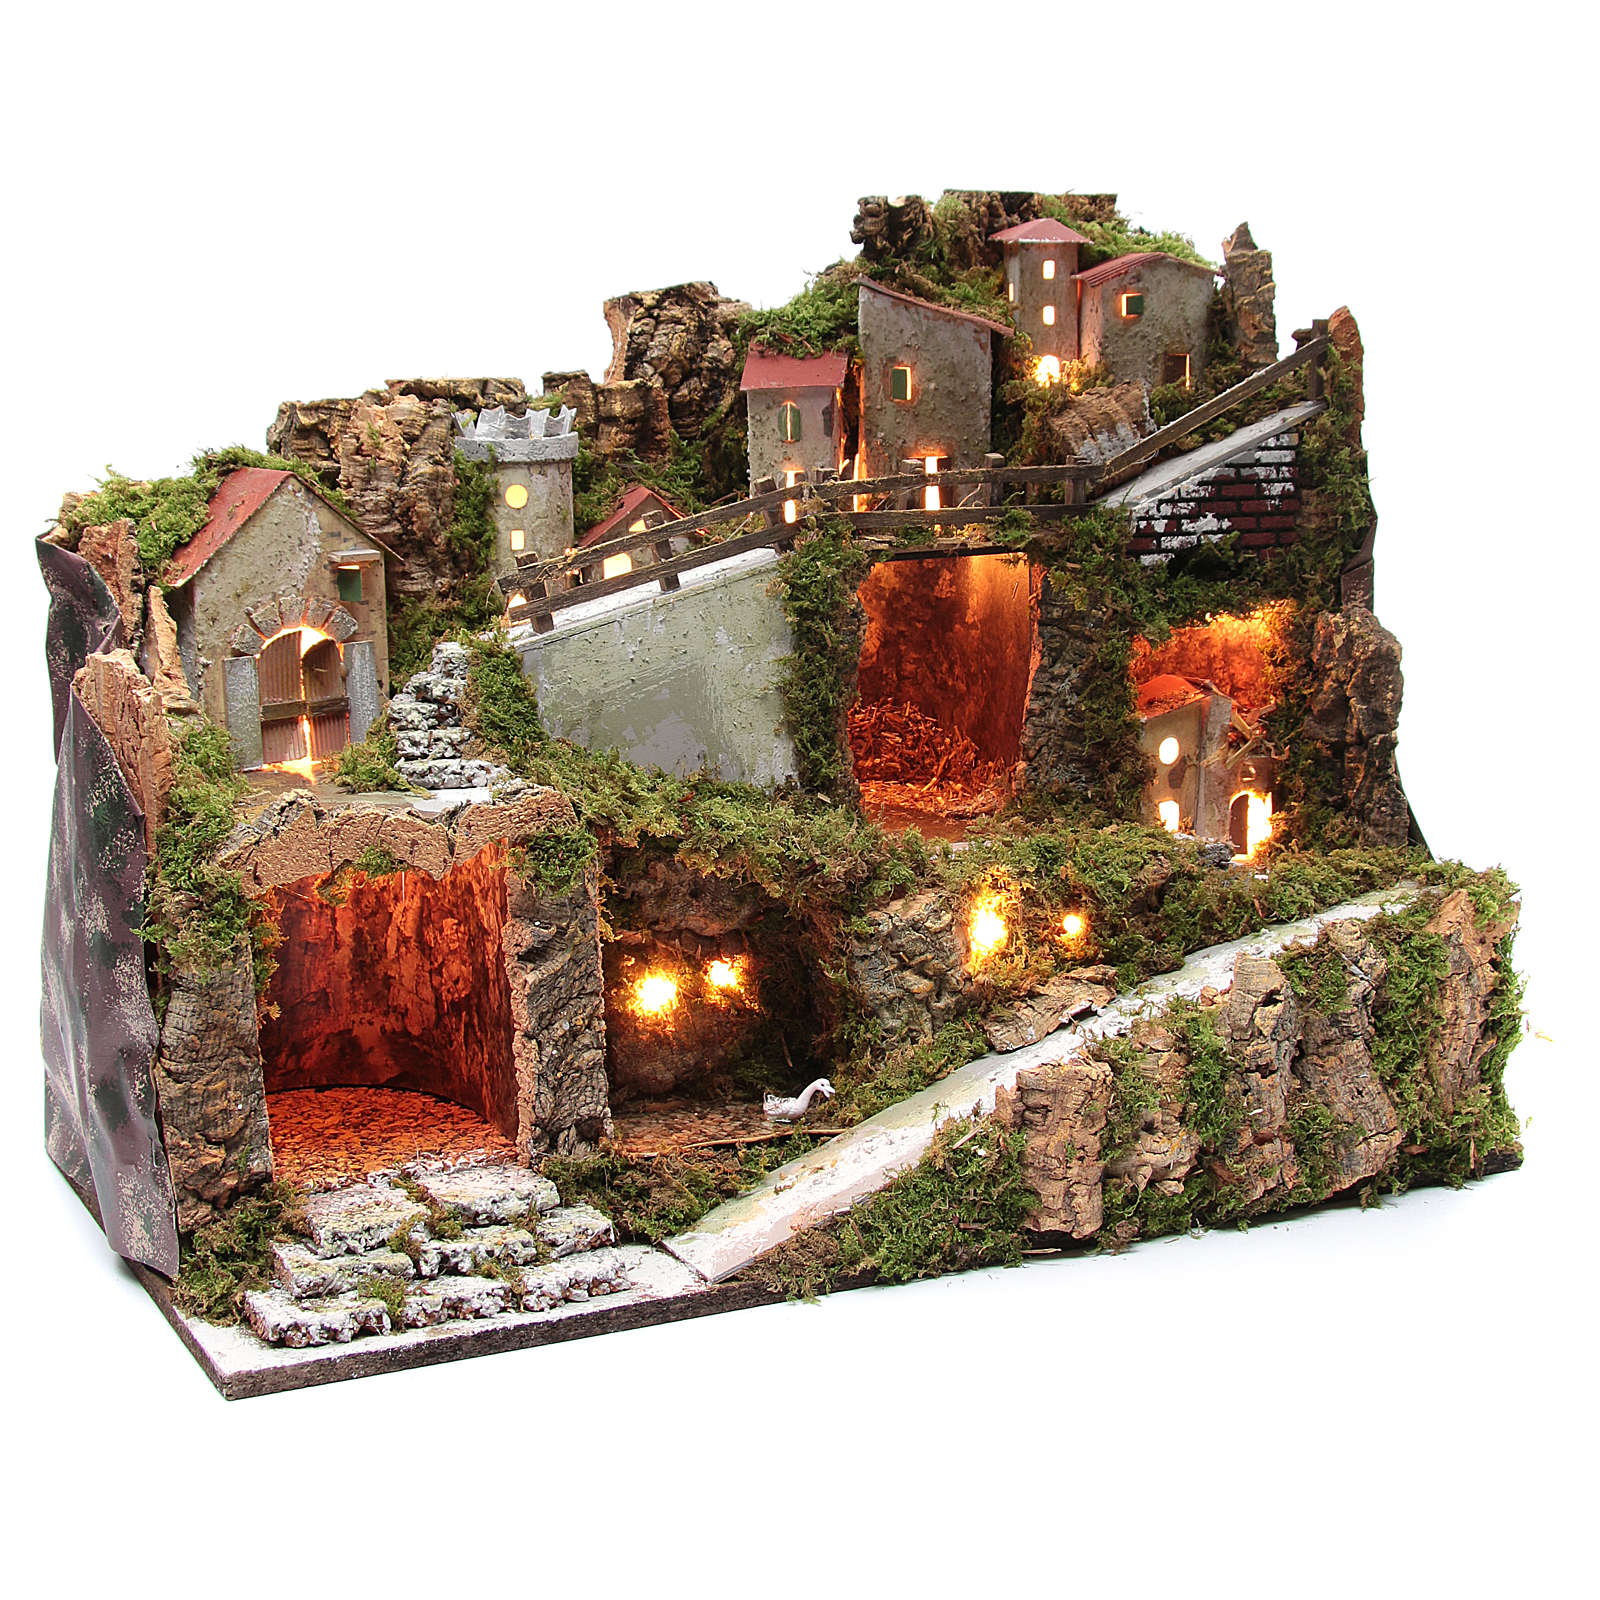 Nativity scene village with lights and tank lake effect 40x60x35 cm 4